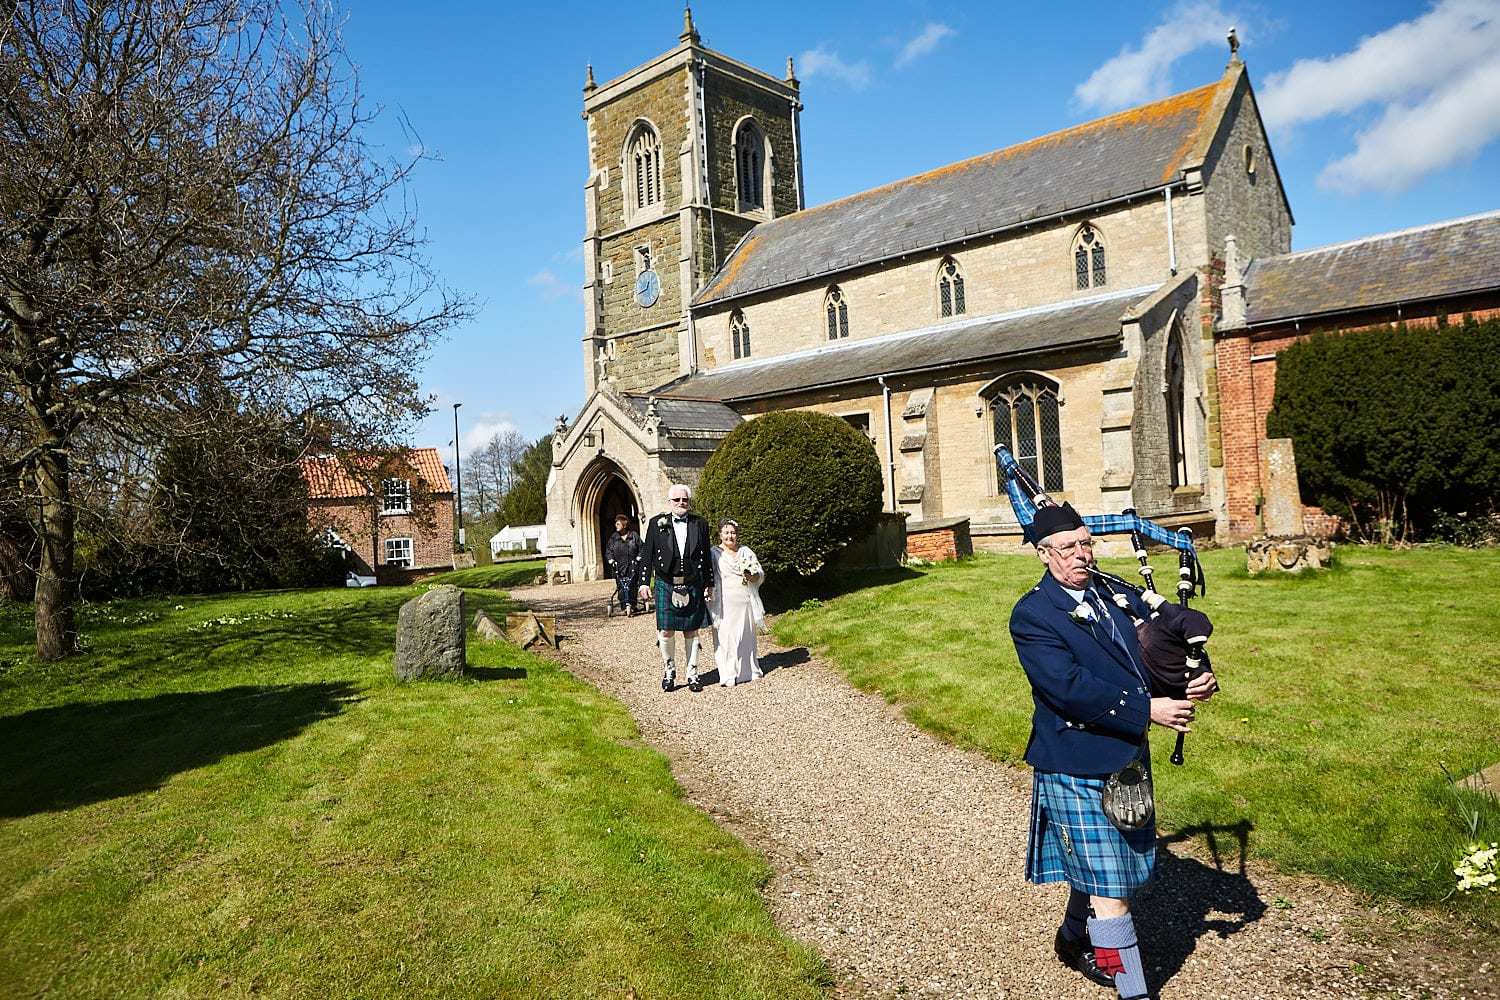 A piper walks a couple outside of the church at Partney Spilsby